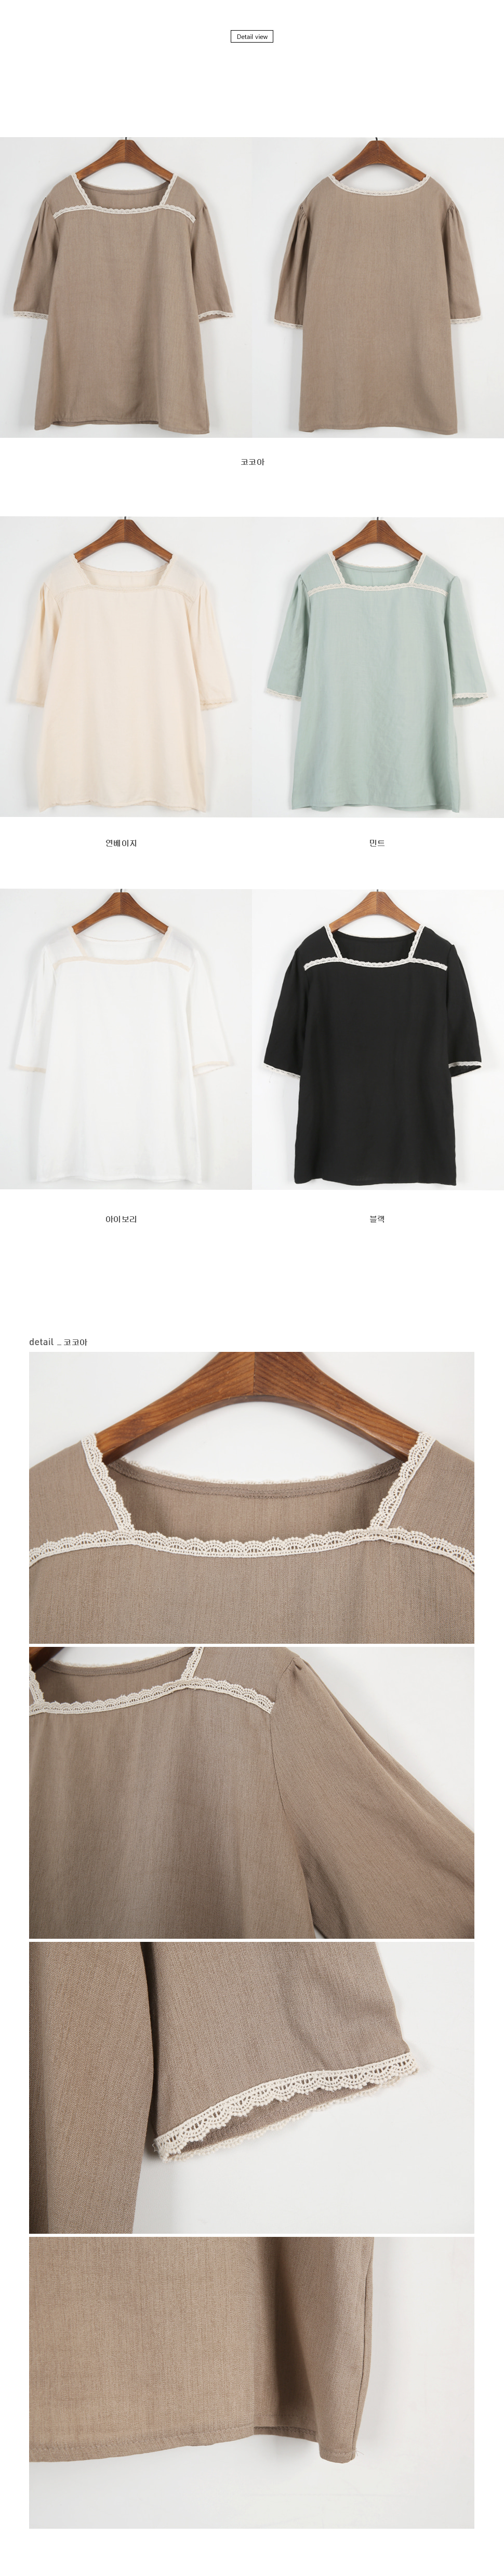 Square lace blouse Confirmed ★ / No Mint Progression / Maintain a black photo / Ivory new shoot scheduled